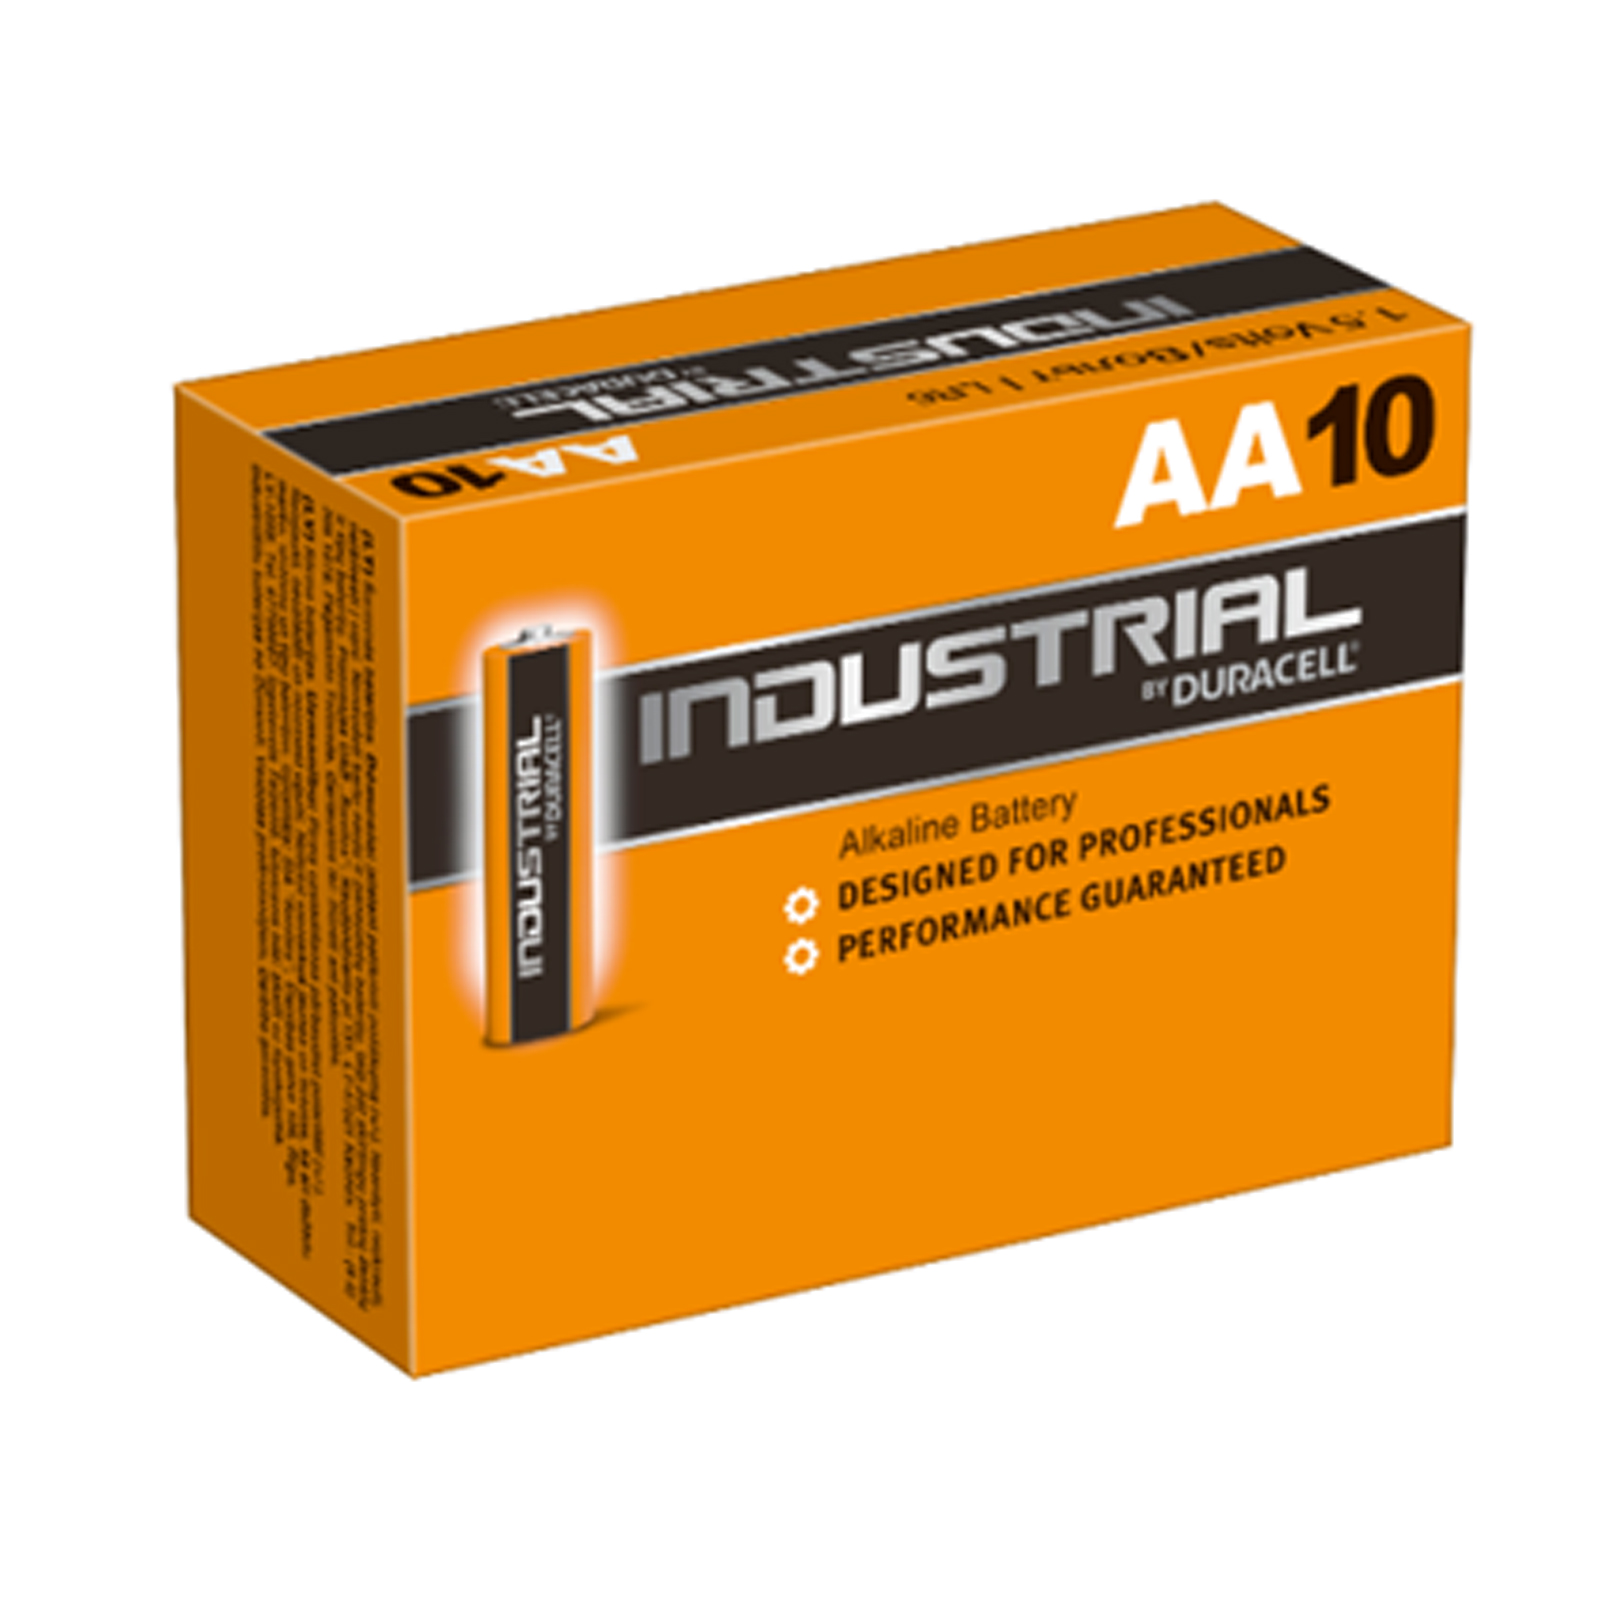 10 x duracell hochleistungs batterie industrial alkaline. Black Bedroom Furniture Sets. Home Design Ideas